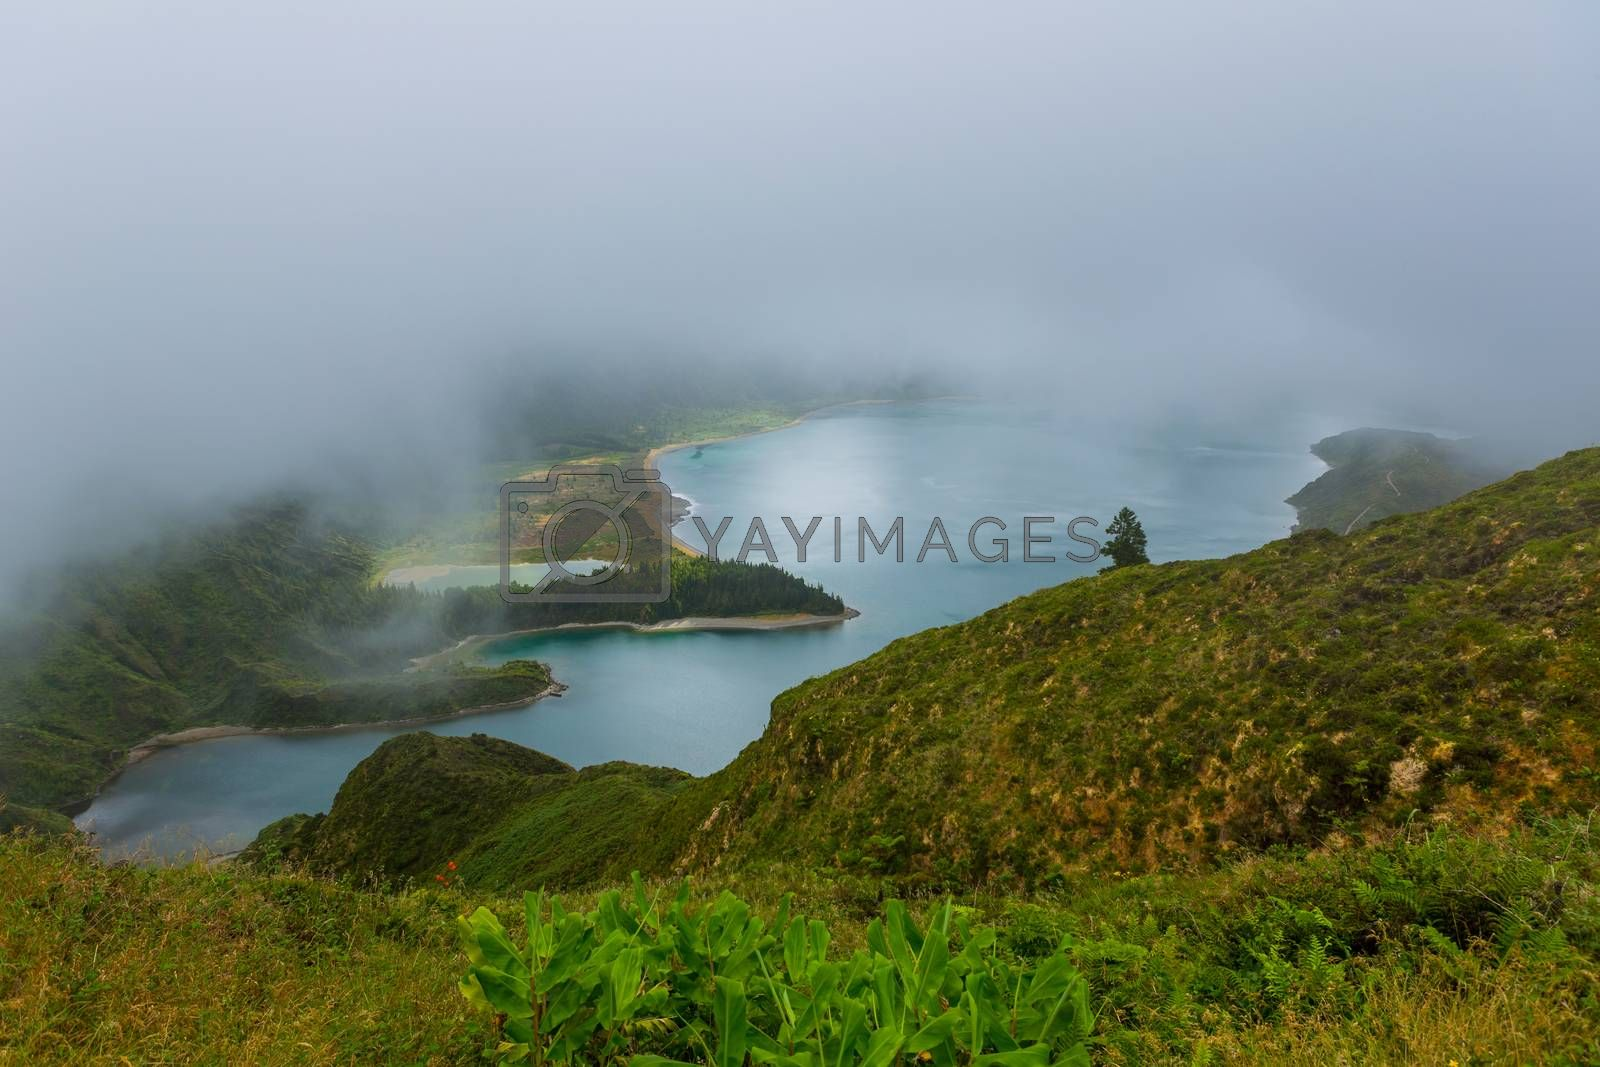 Royalty free image of view of Lagoa do Fogo by zittto